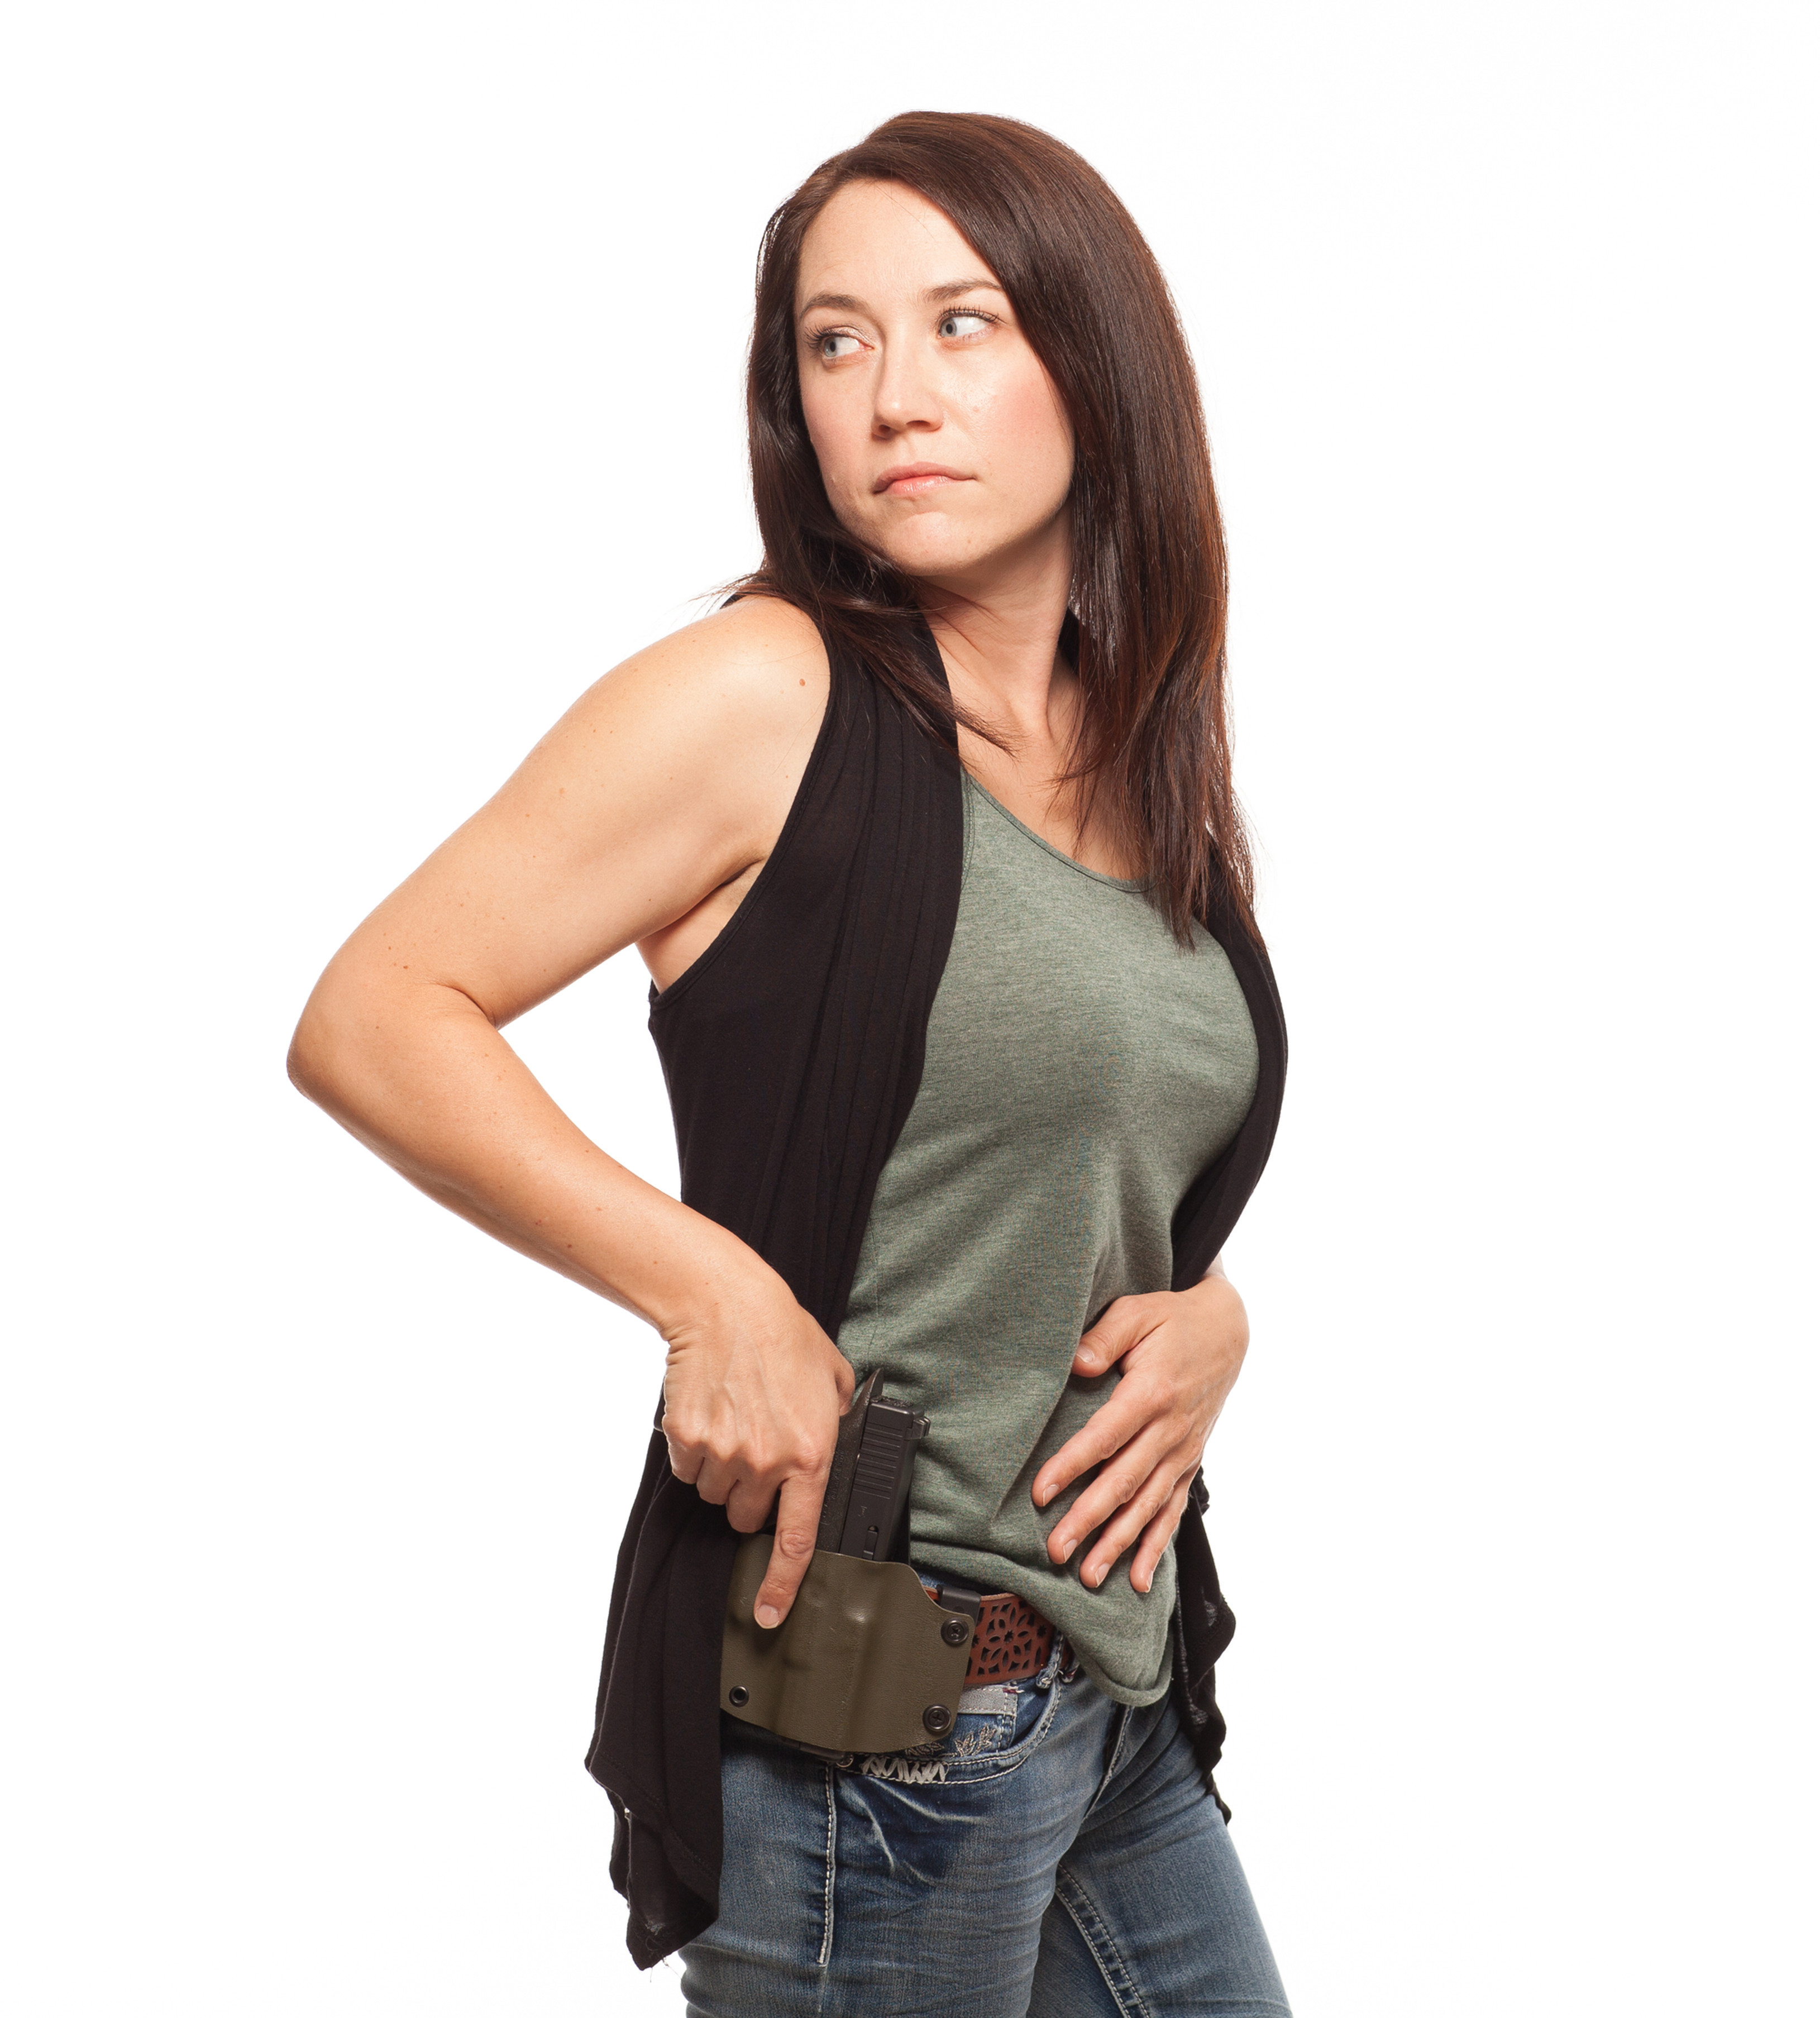 South Carolina Concealed Weapon Permit